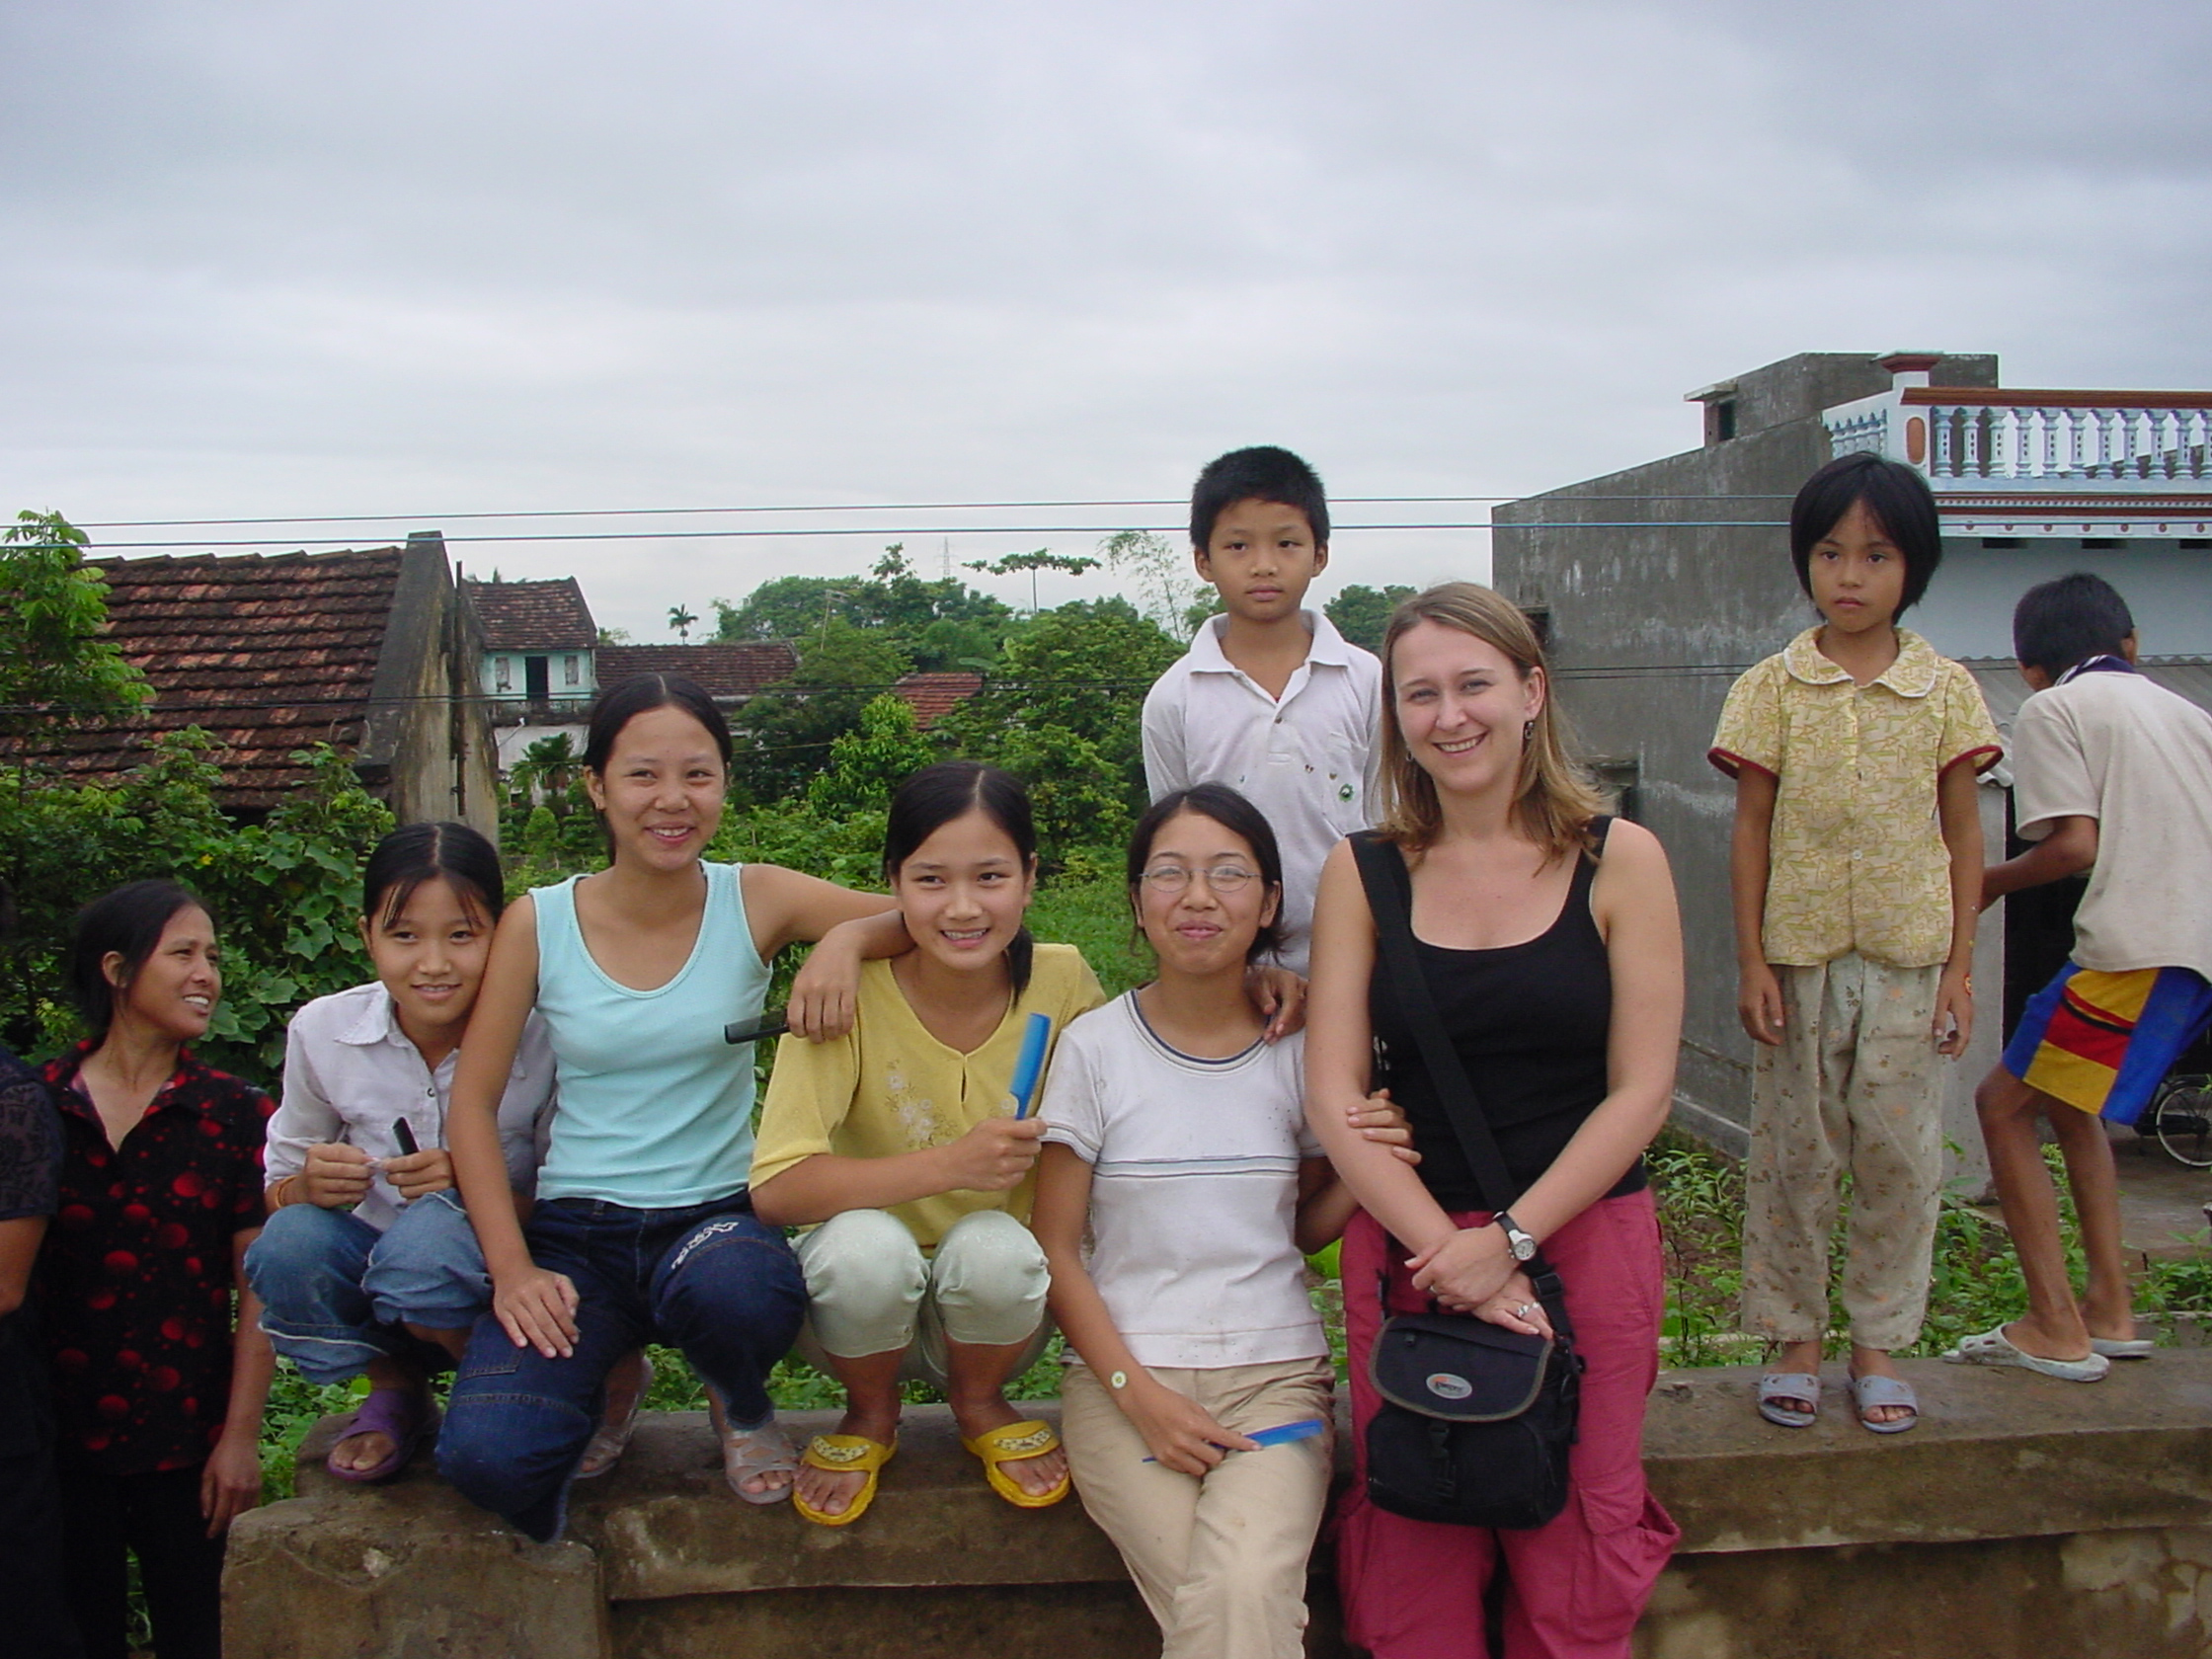 Sherri poses with a group of young girls in Southeast Asia.